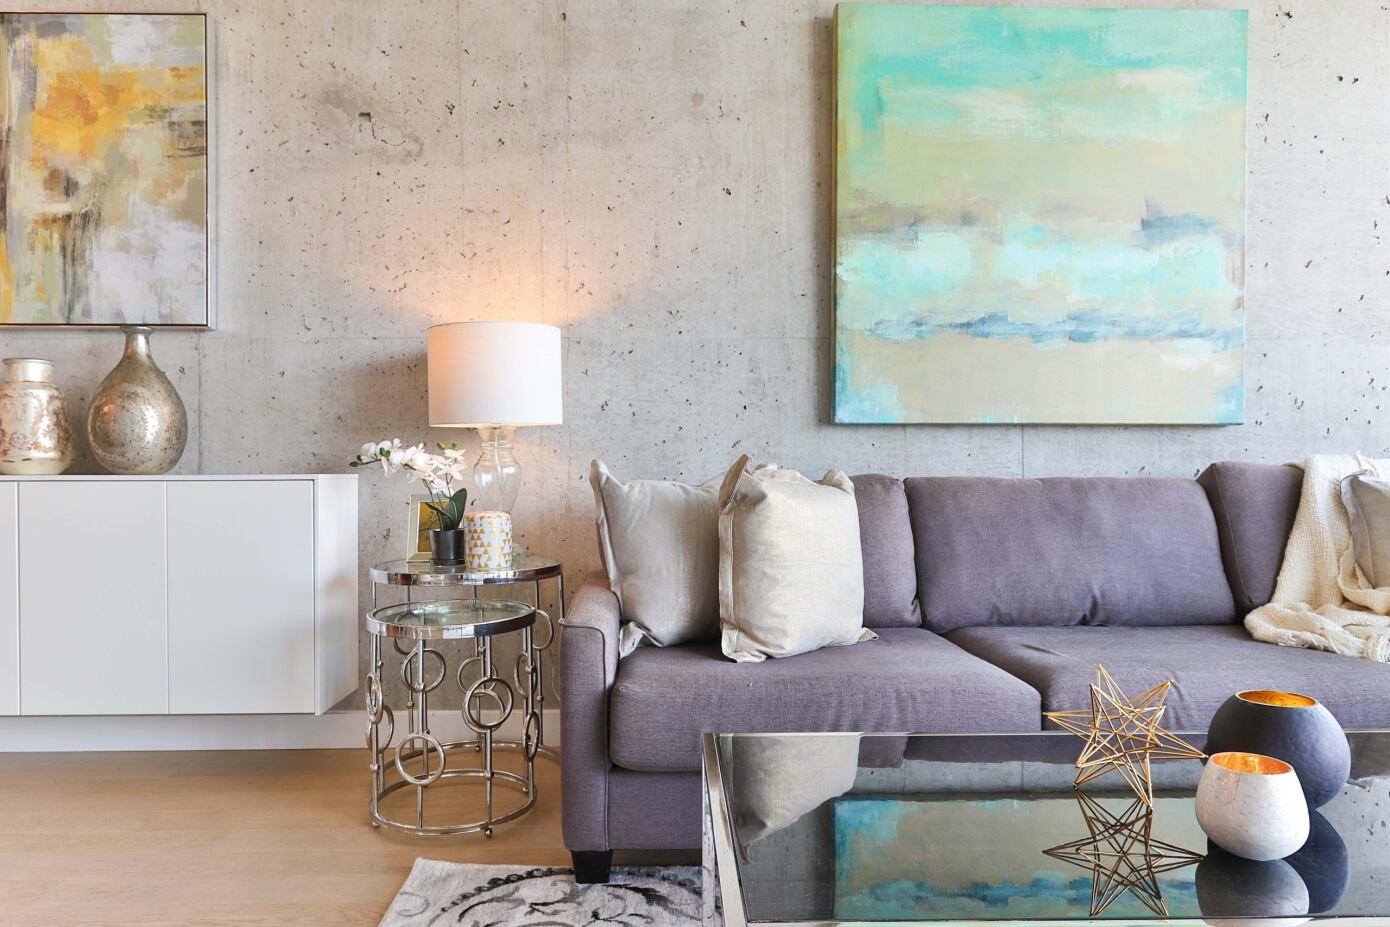 6 Tips To Decorate Your Home Like An Interior Designer